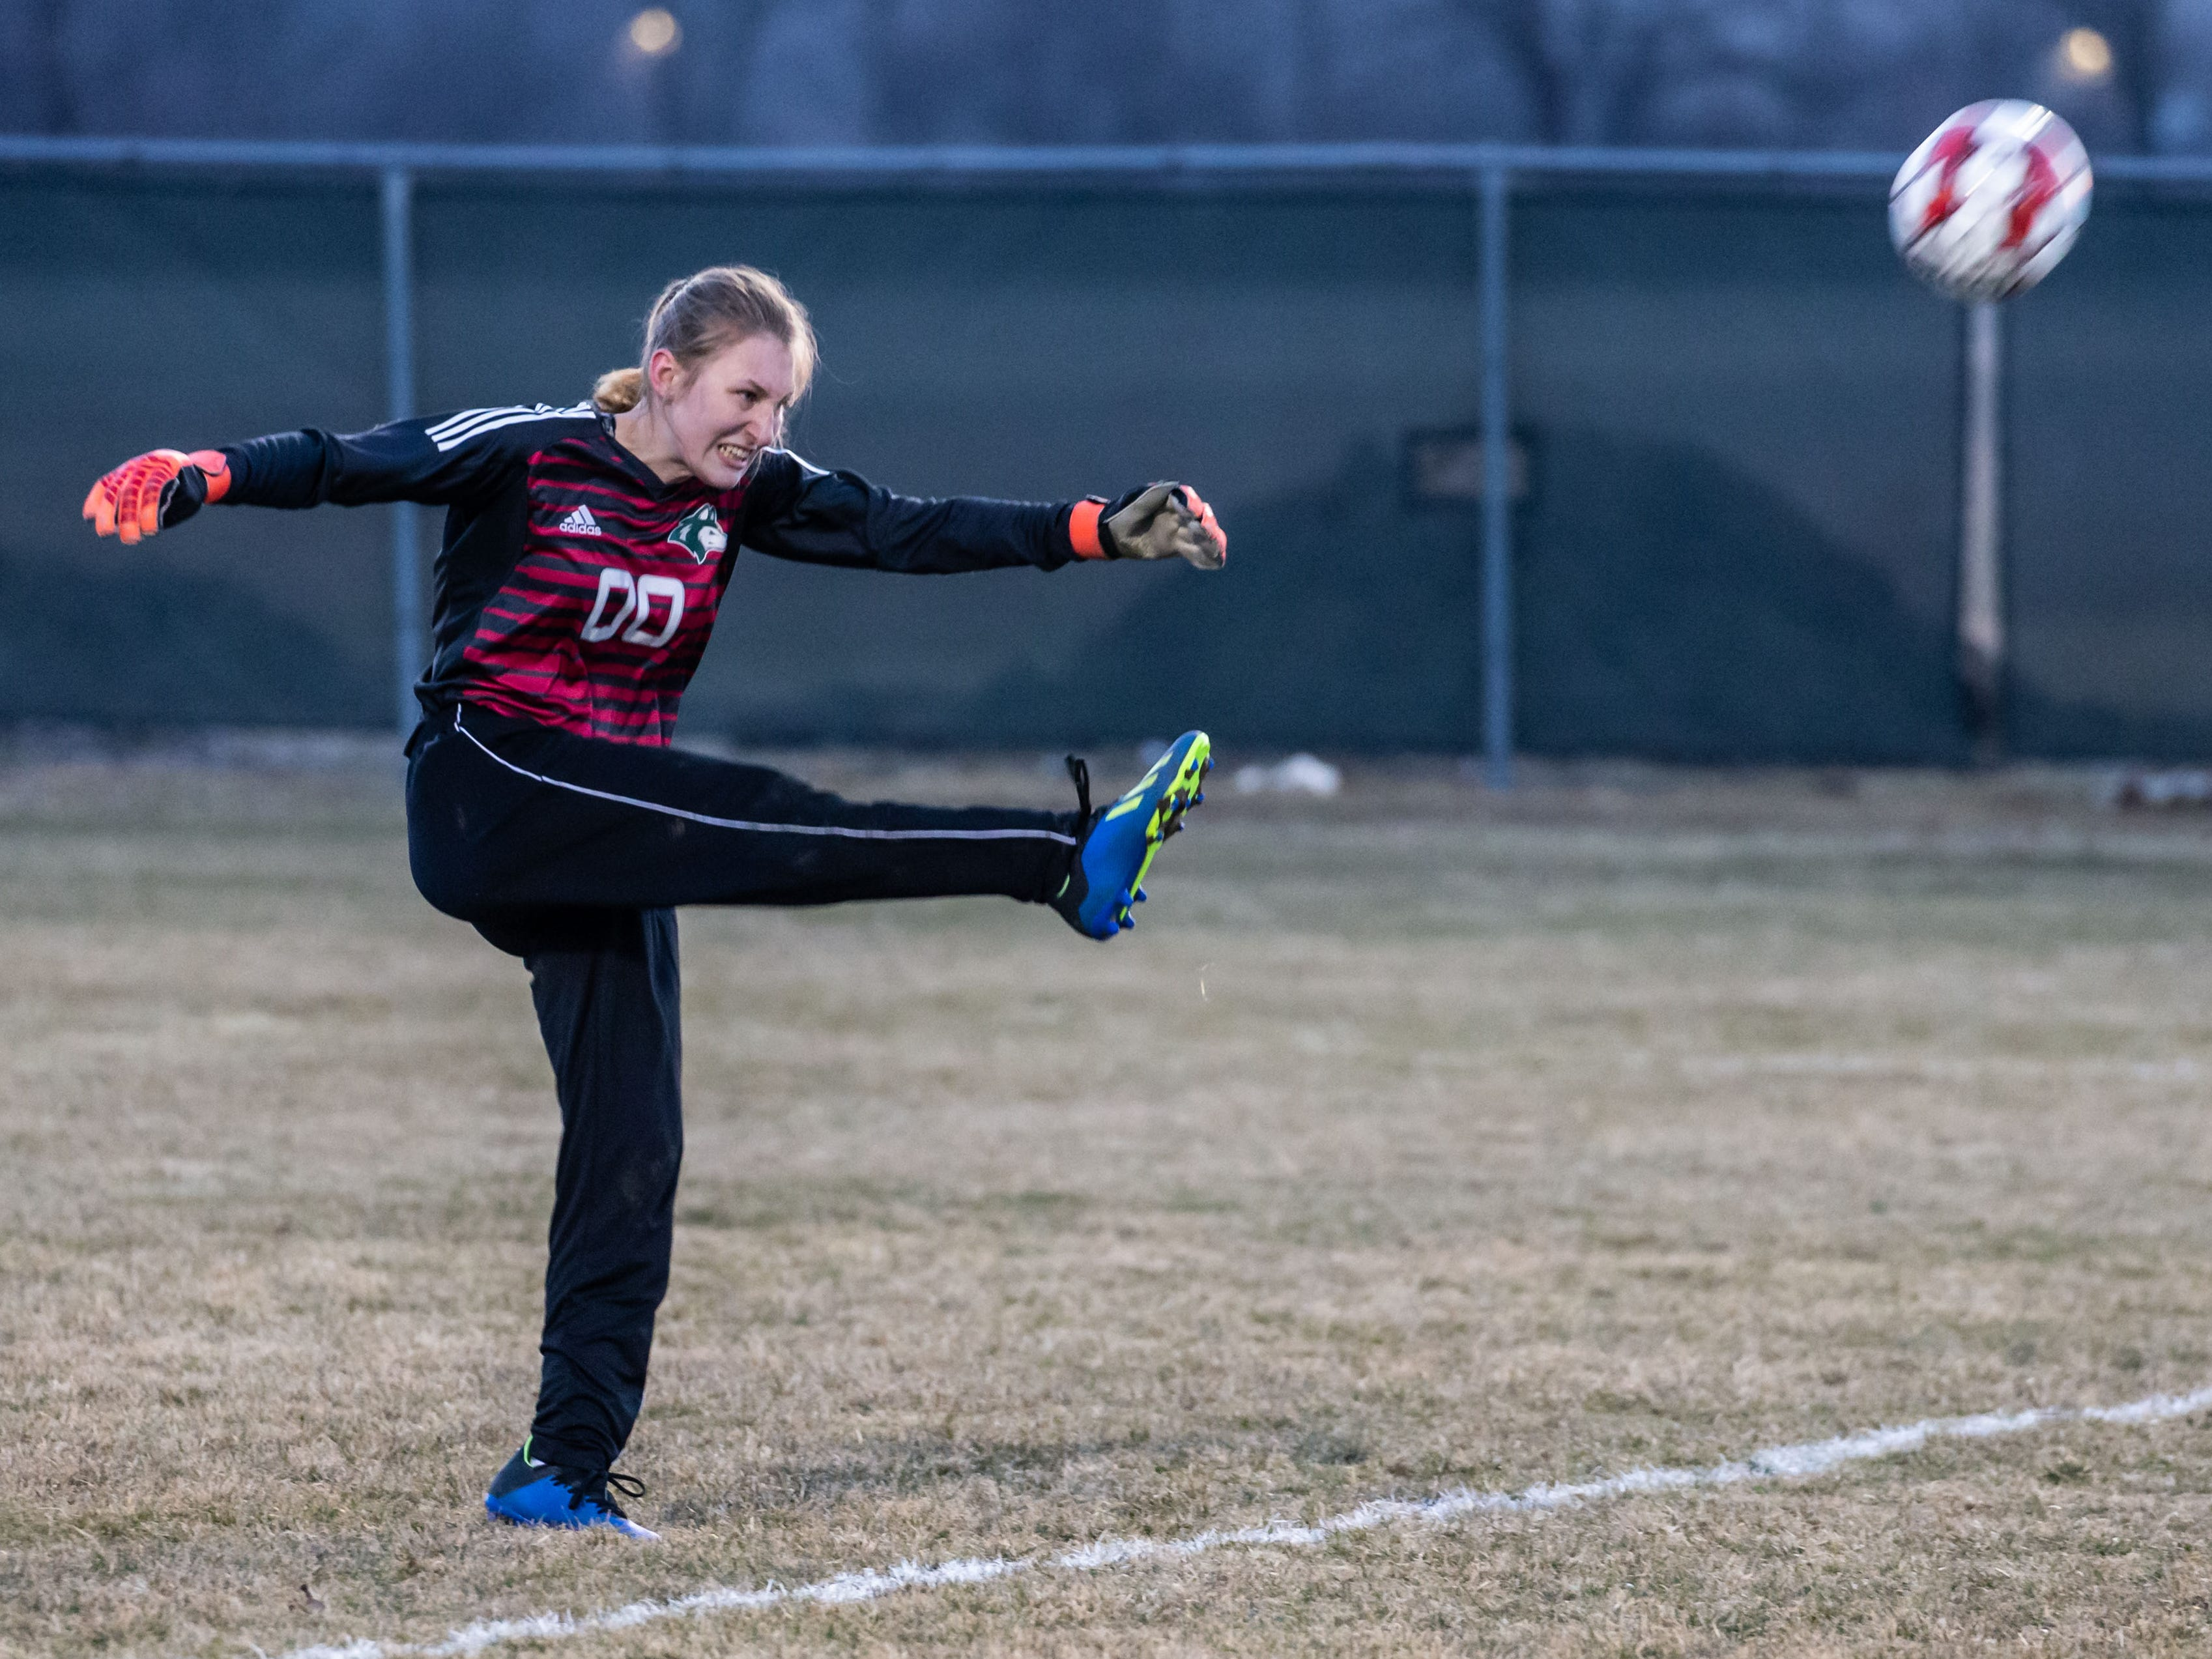 West Allis Hale's Abby Wargolet (00) kicks one downfield during the game at Hamilton on Tuesday, April 2, 2019.